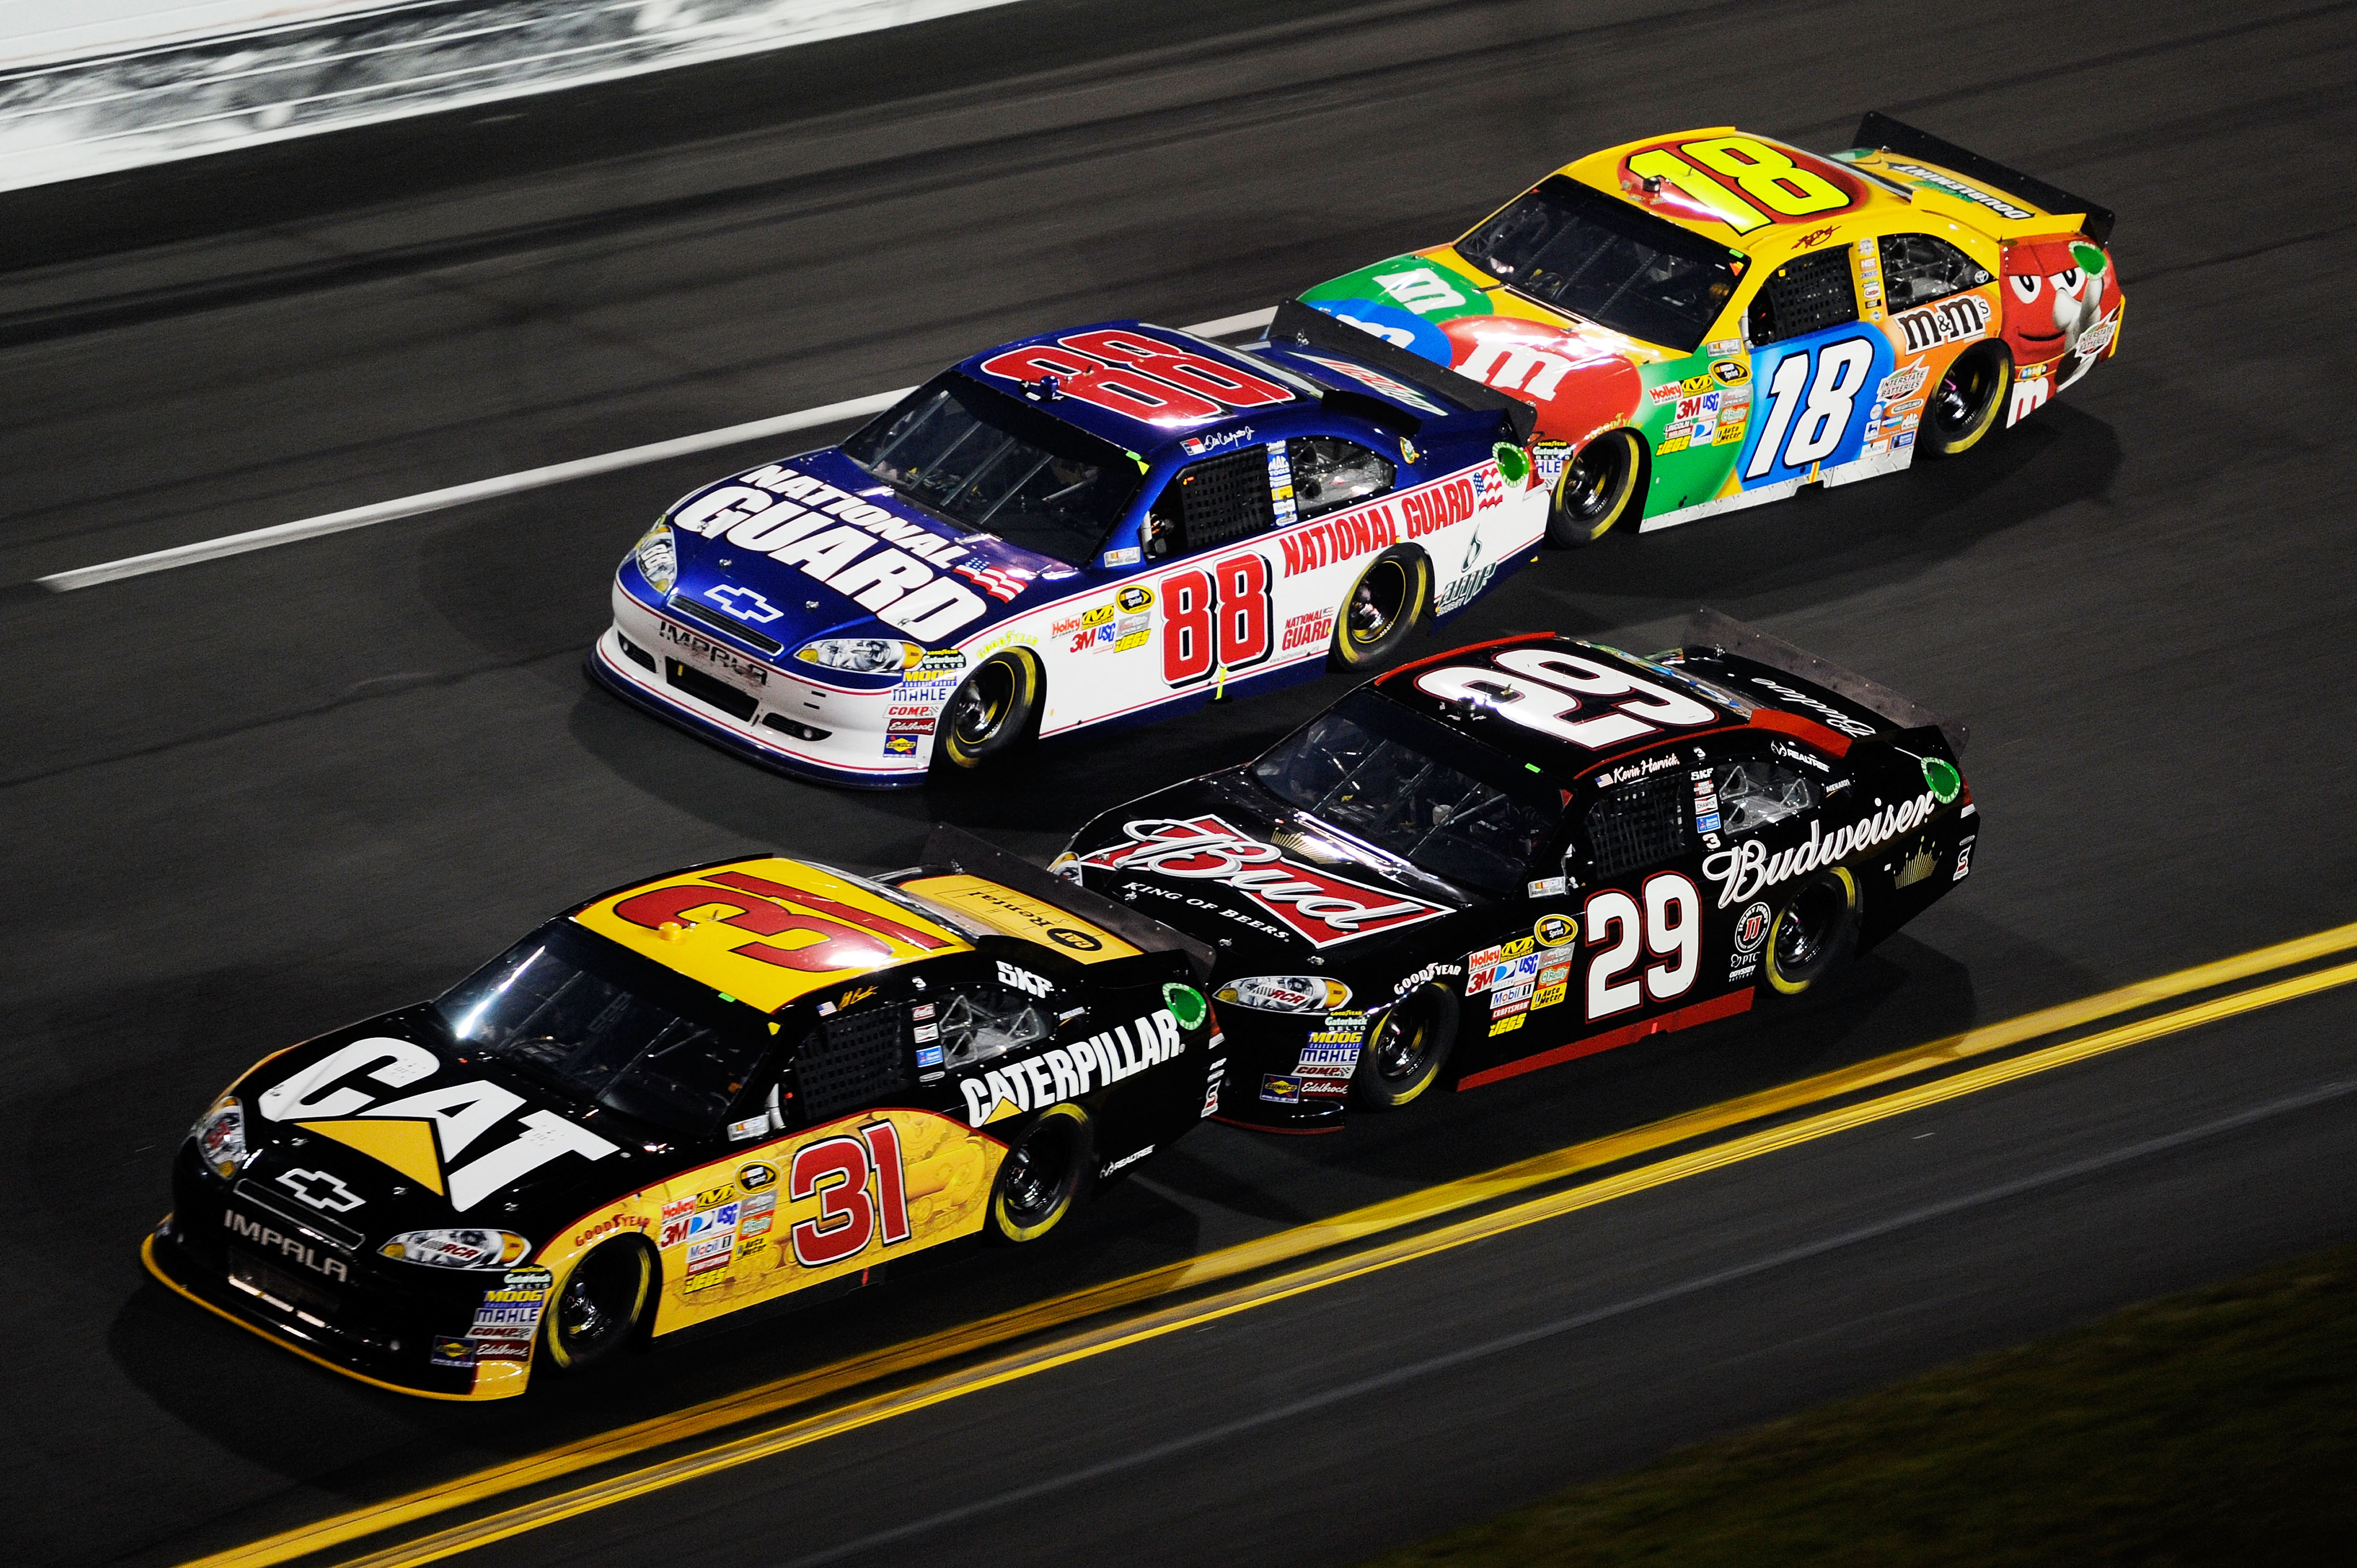 Jeff Burton has three RCR teammates that are strong restrictor plate racers.